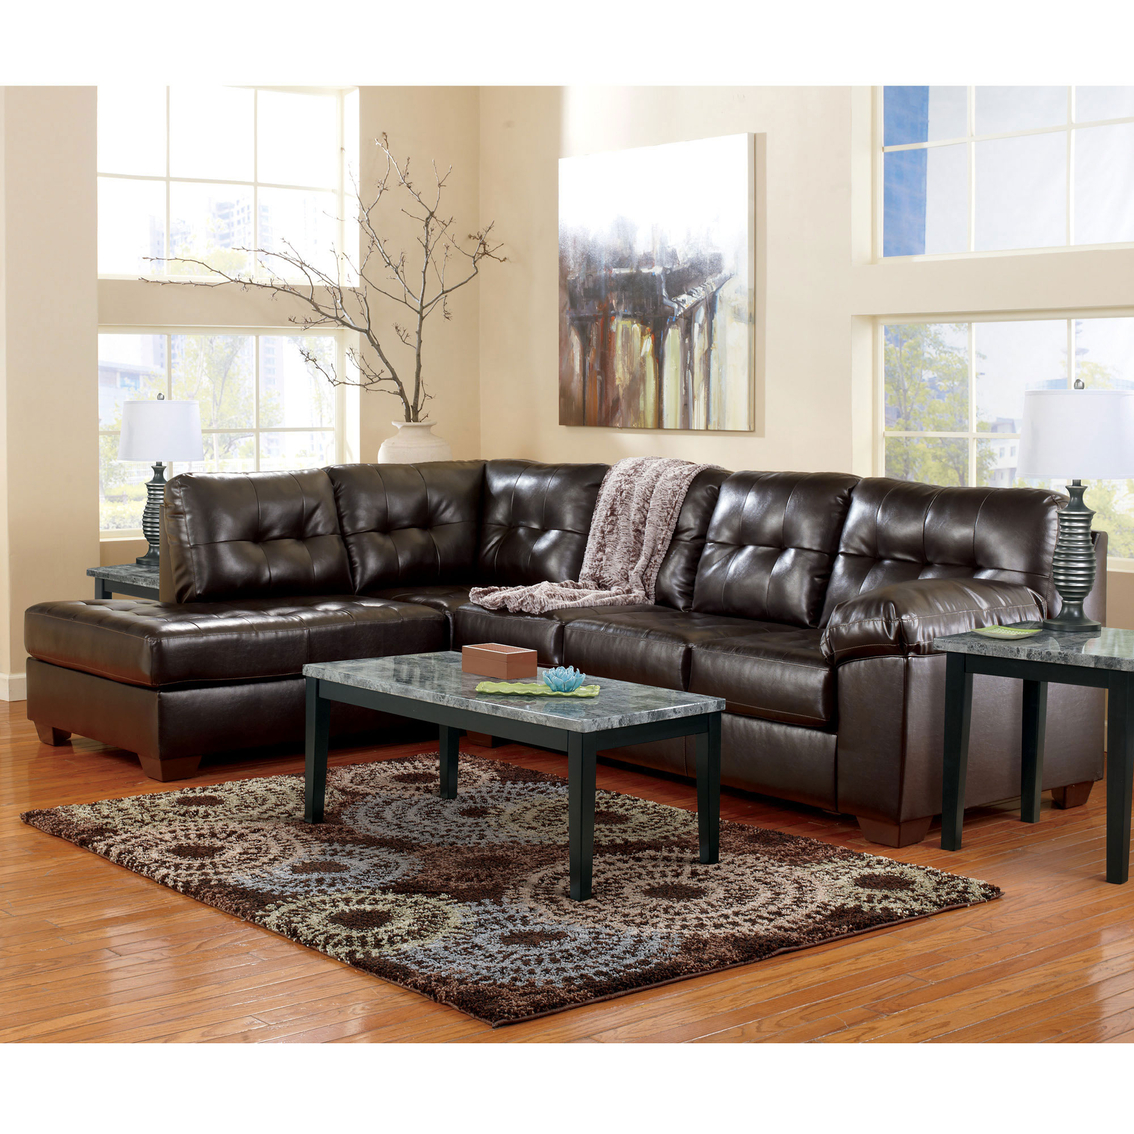 2 pc laf sectional sofa dragon mart signature design by ashley alliston durablend